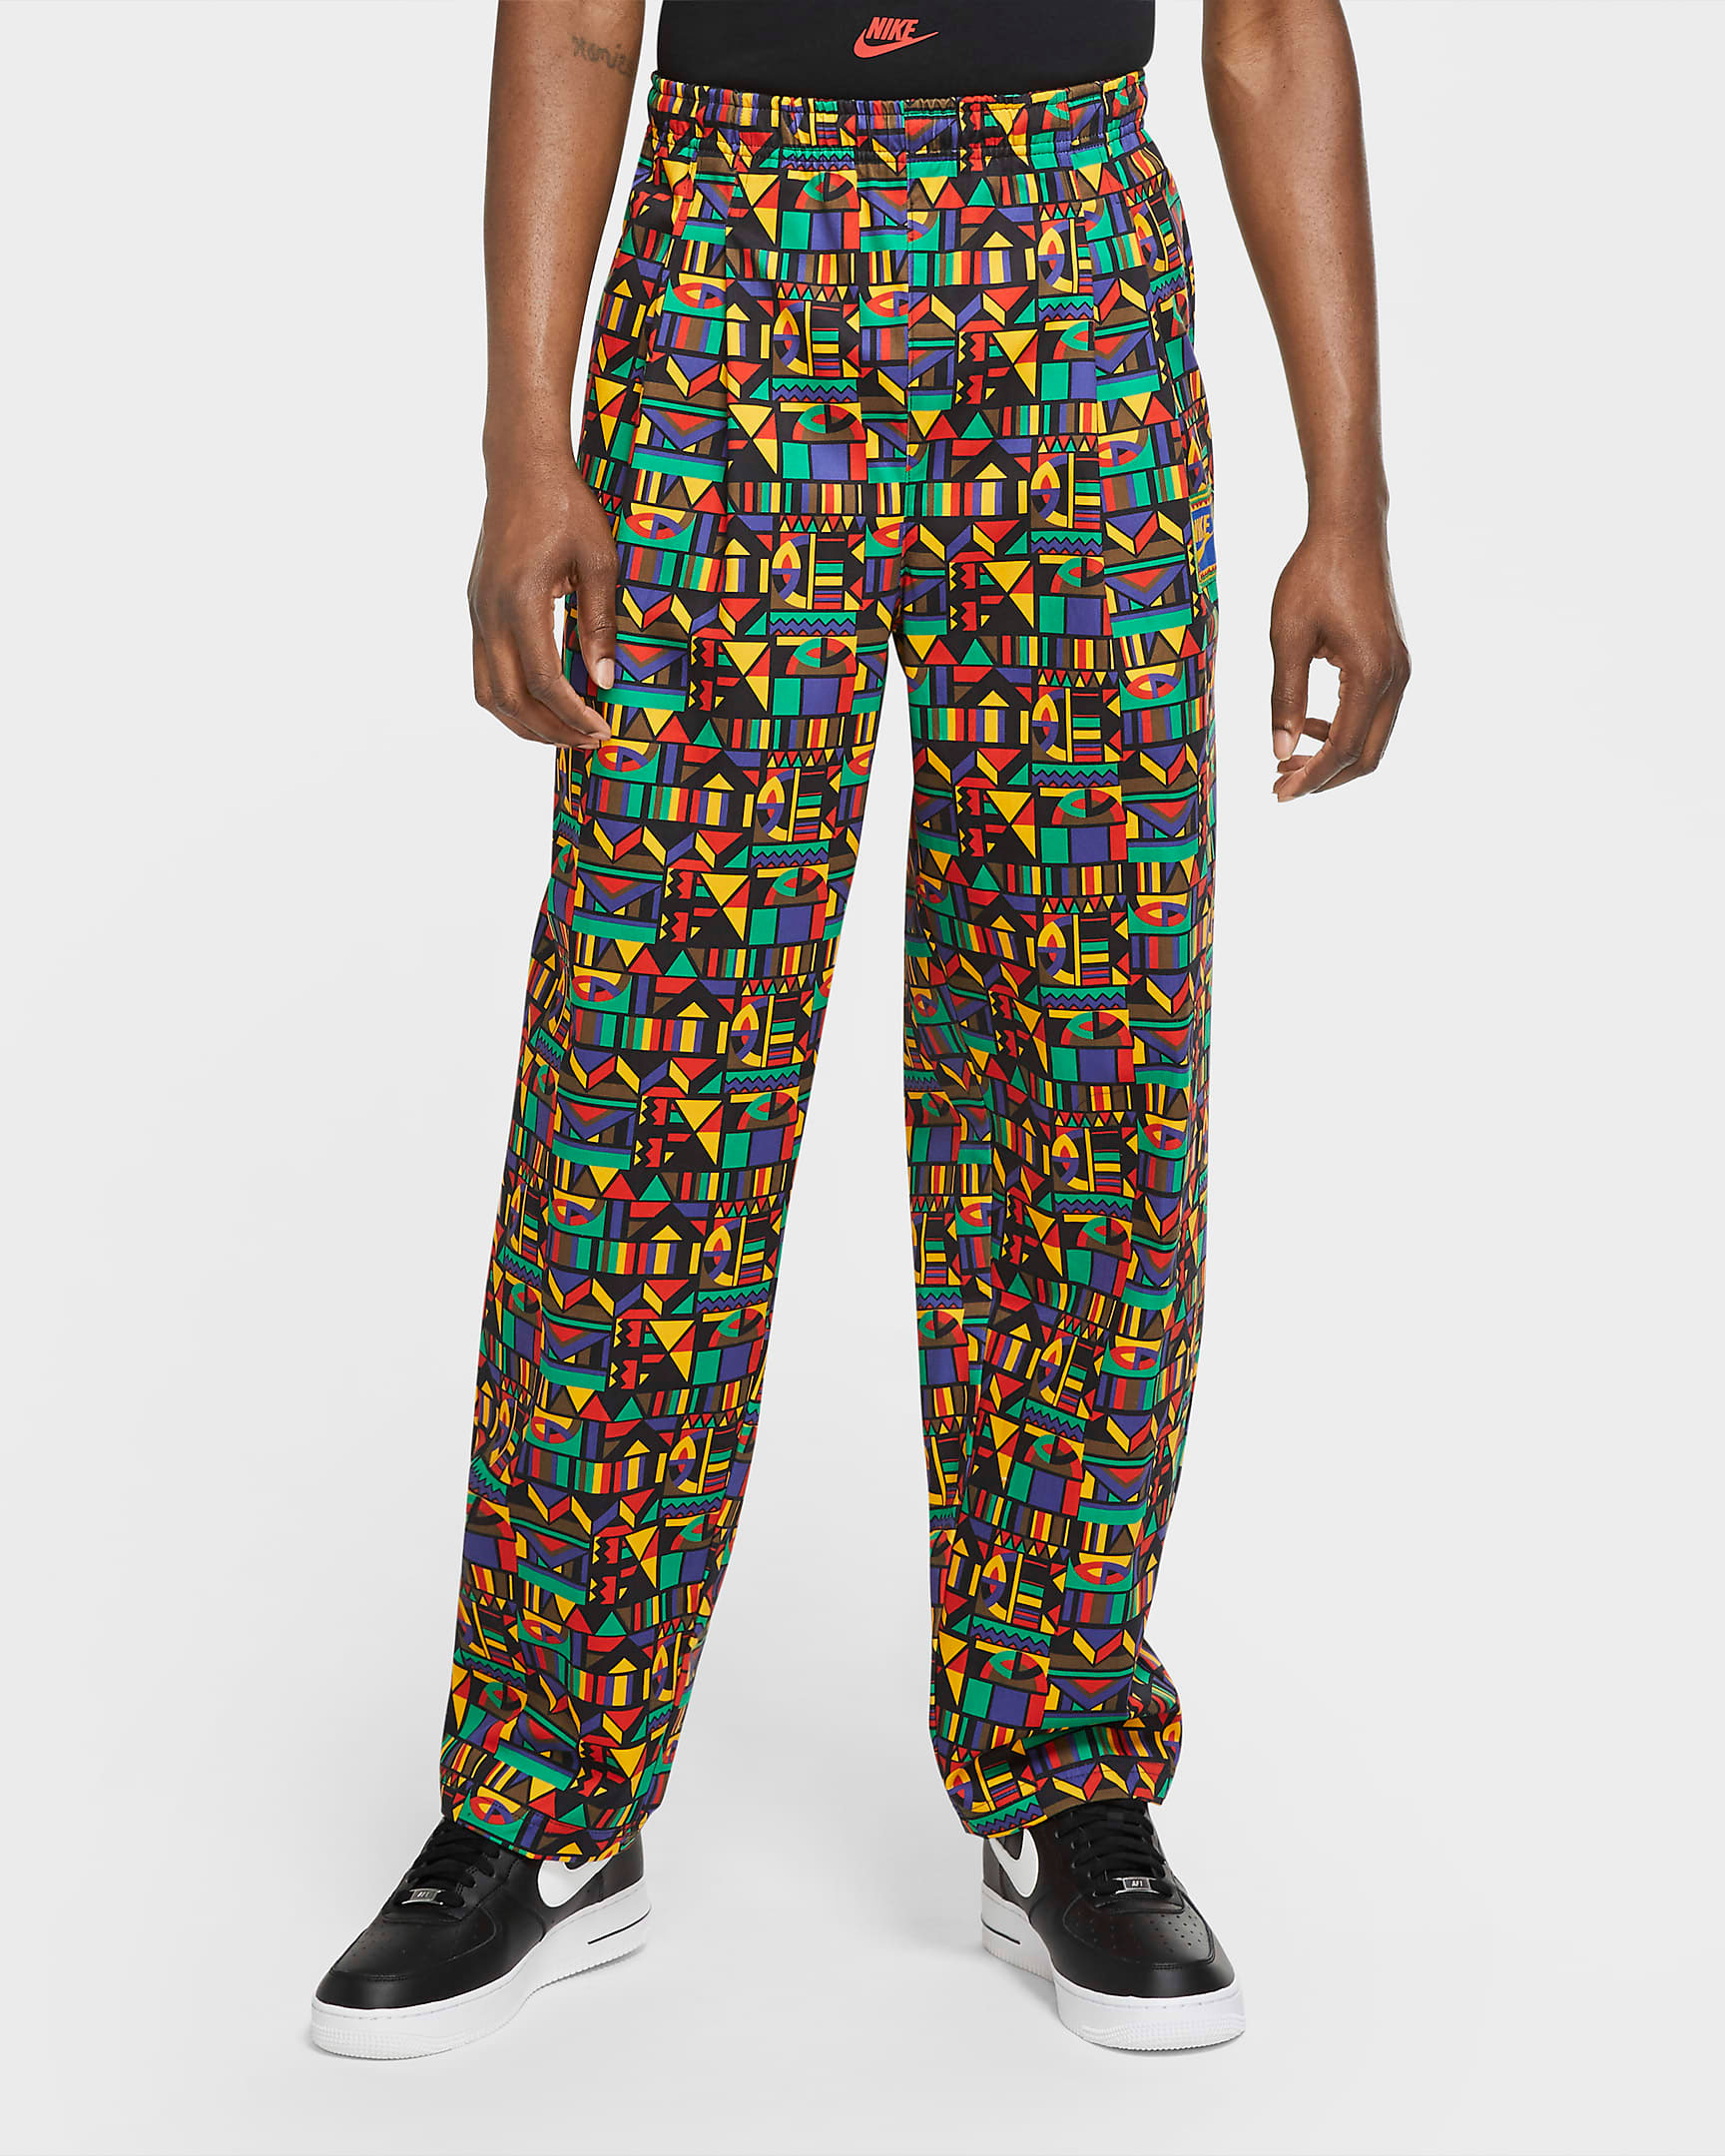 nike-urban-jungle-live-together-play-together-pants-1